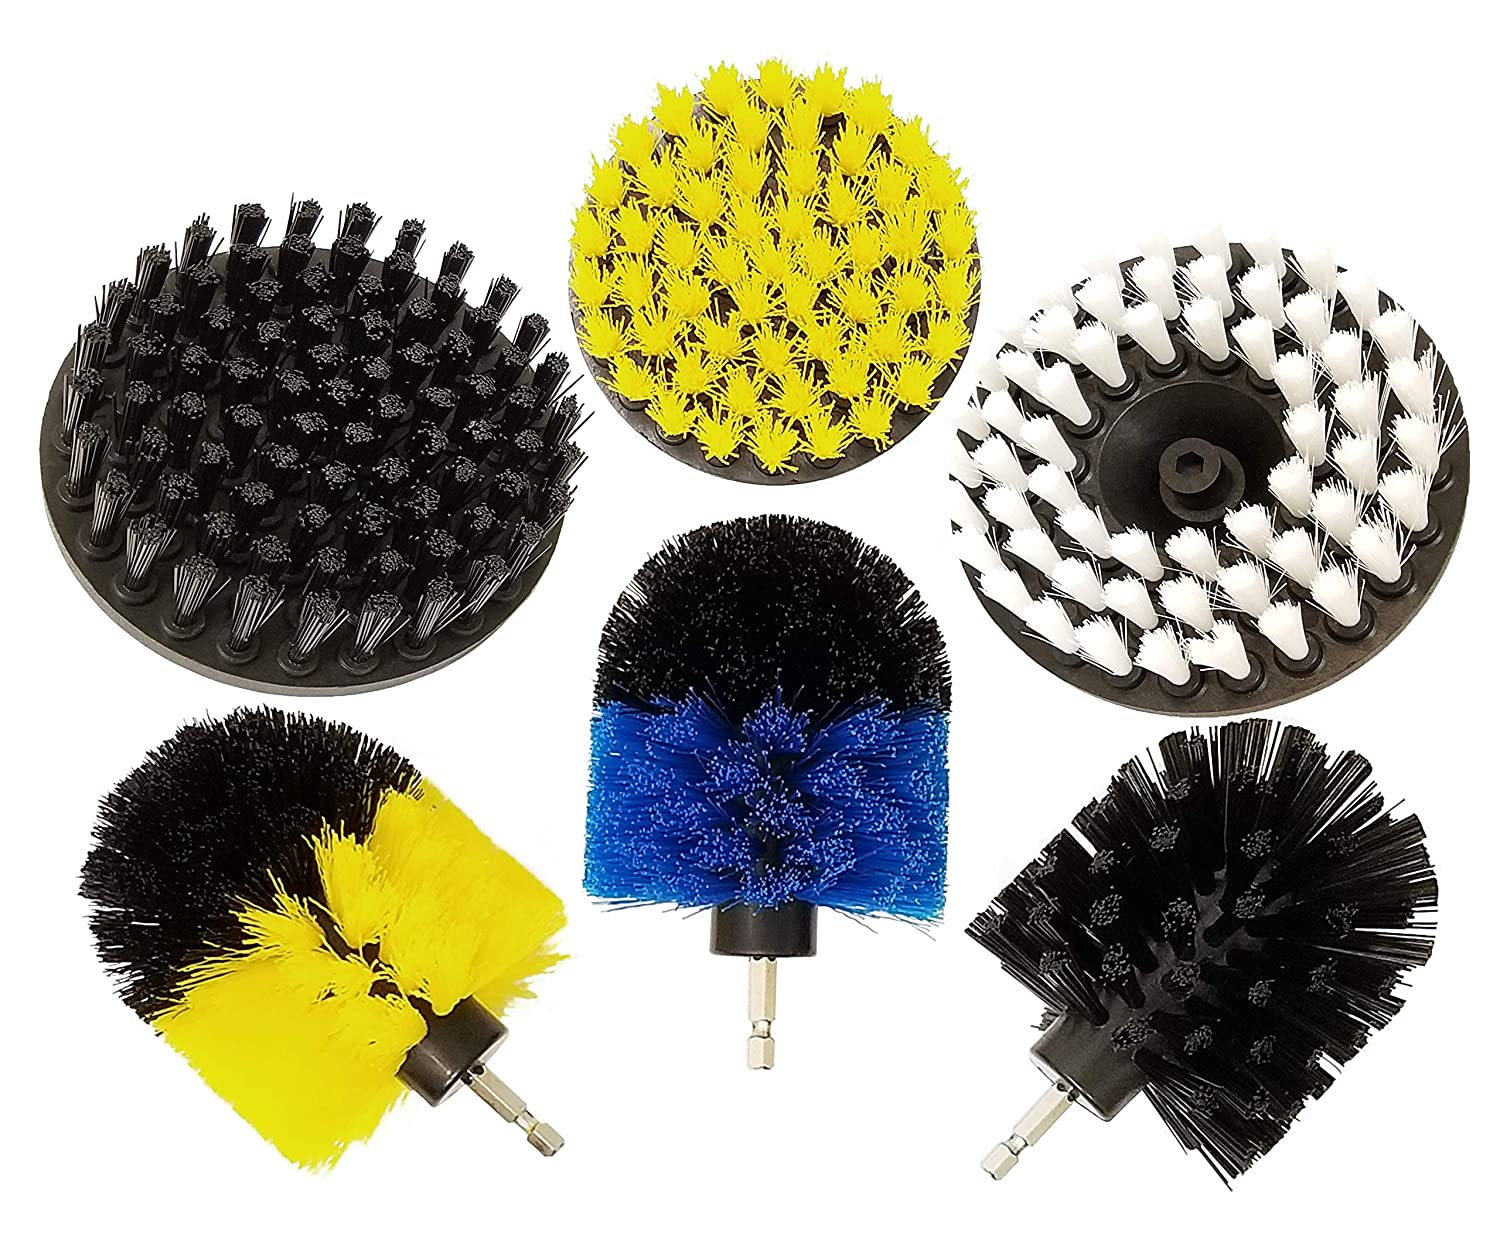 Multi-Purpose Drill Brush Attachment for Cleaning - All in One Power Scrubber Brush